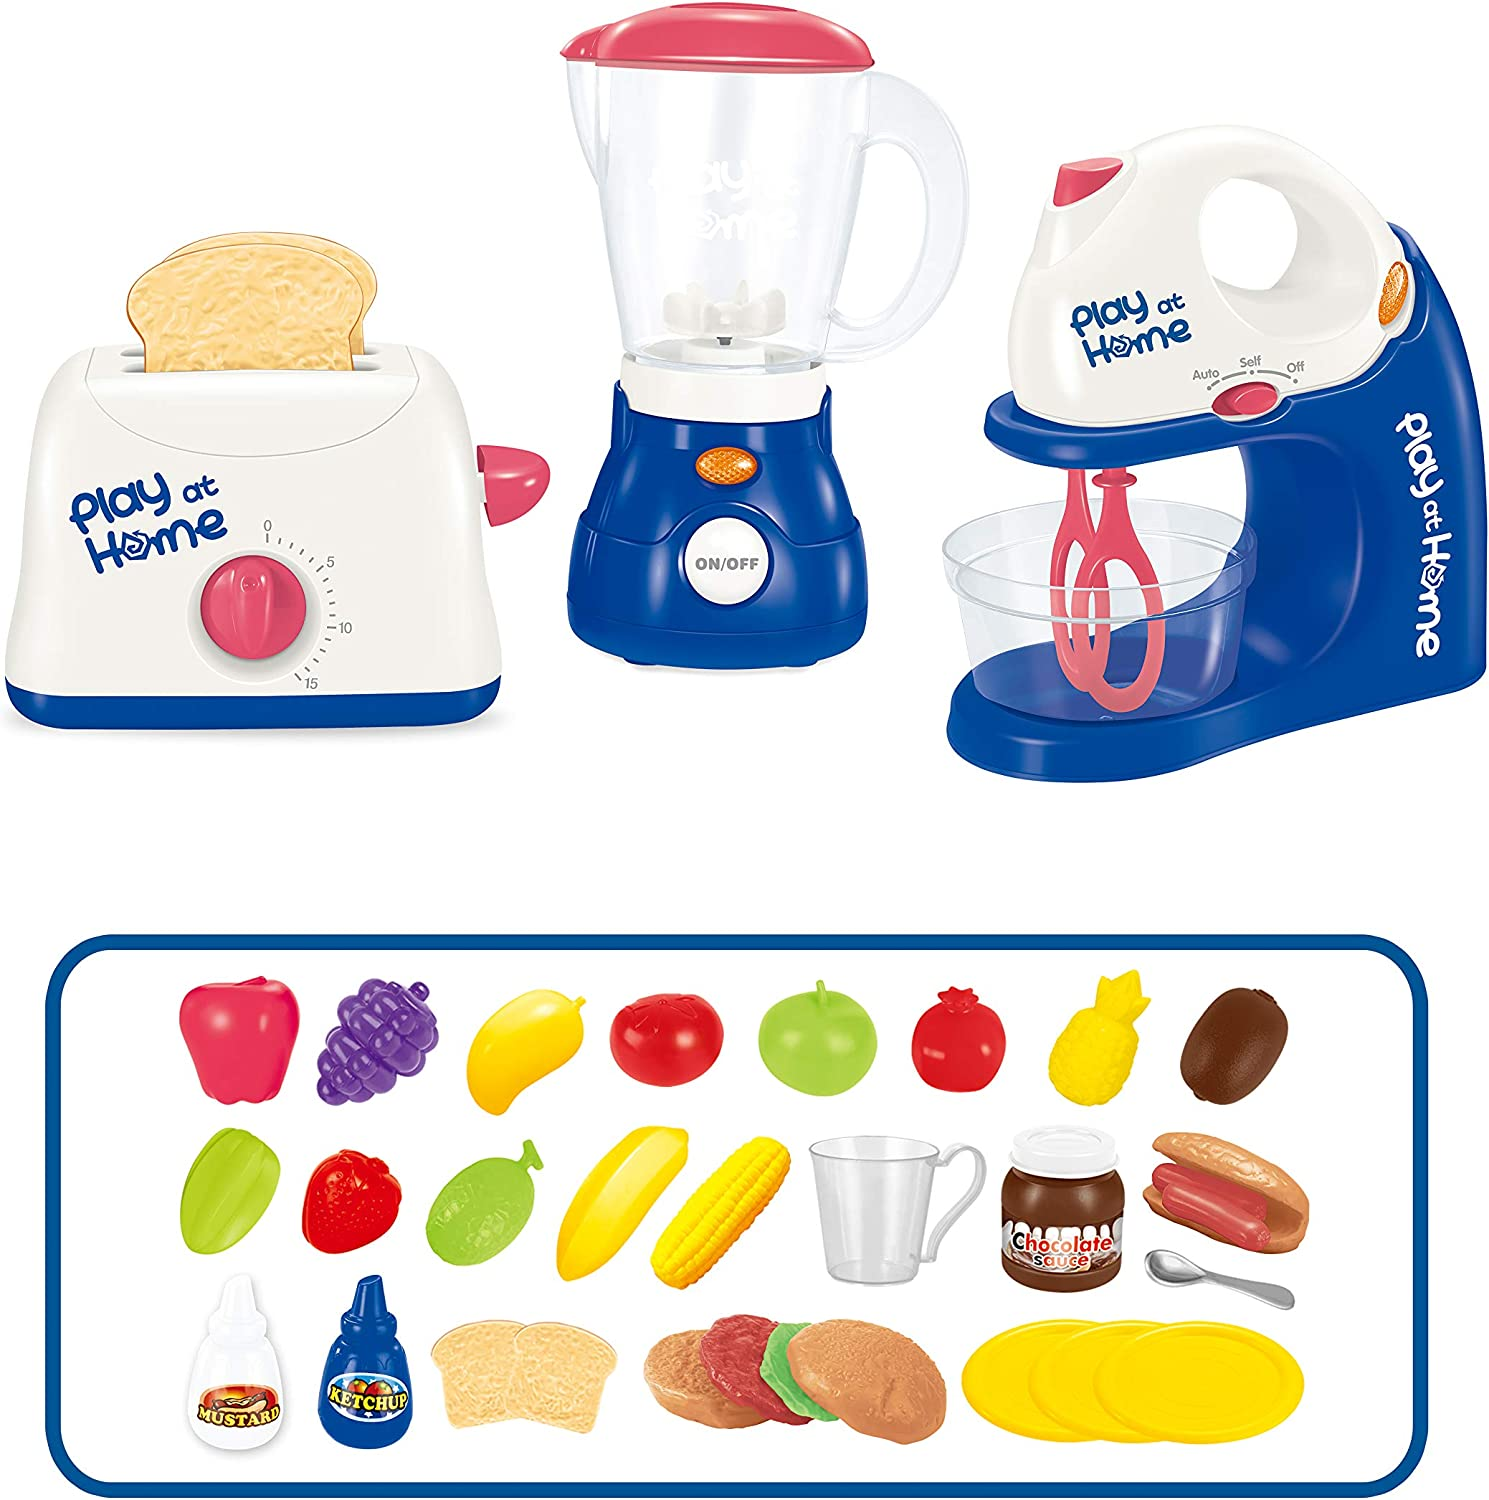 Moquin YLMY Kids Pretend Play Kitchen Set Play Food Accessories Cooking Toy Kitchen Appliance Toys with Toaster, Juicer and Mixer Learning Gift for Boys and Girls